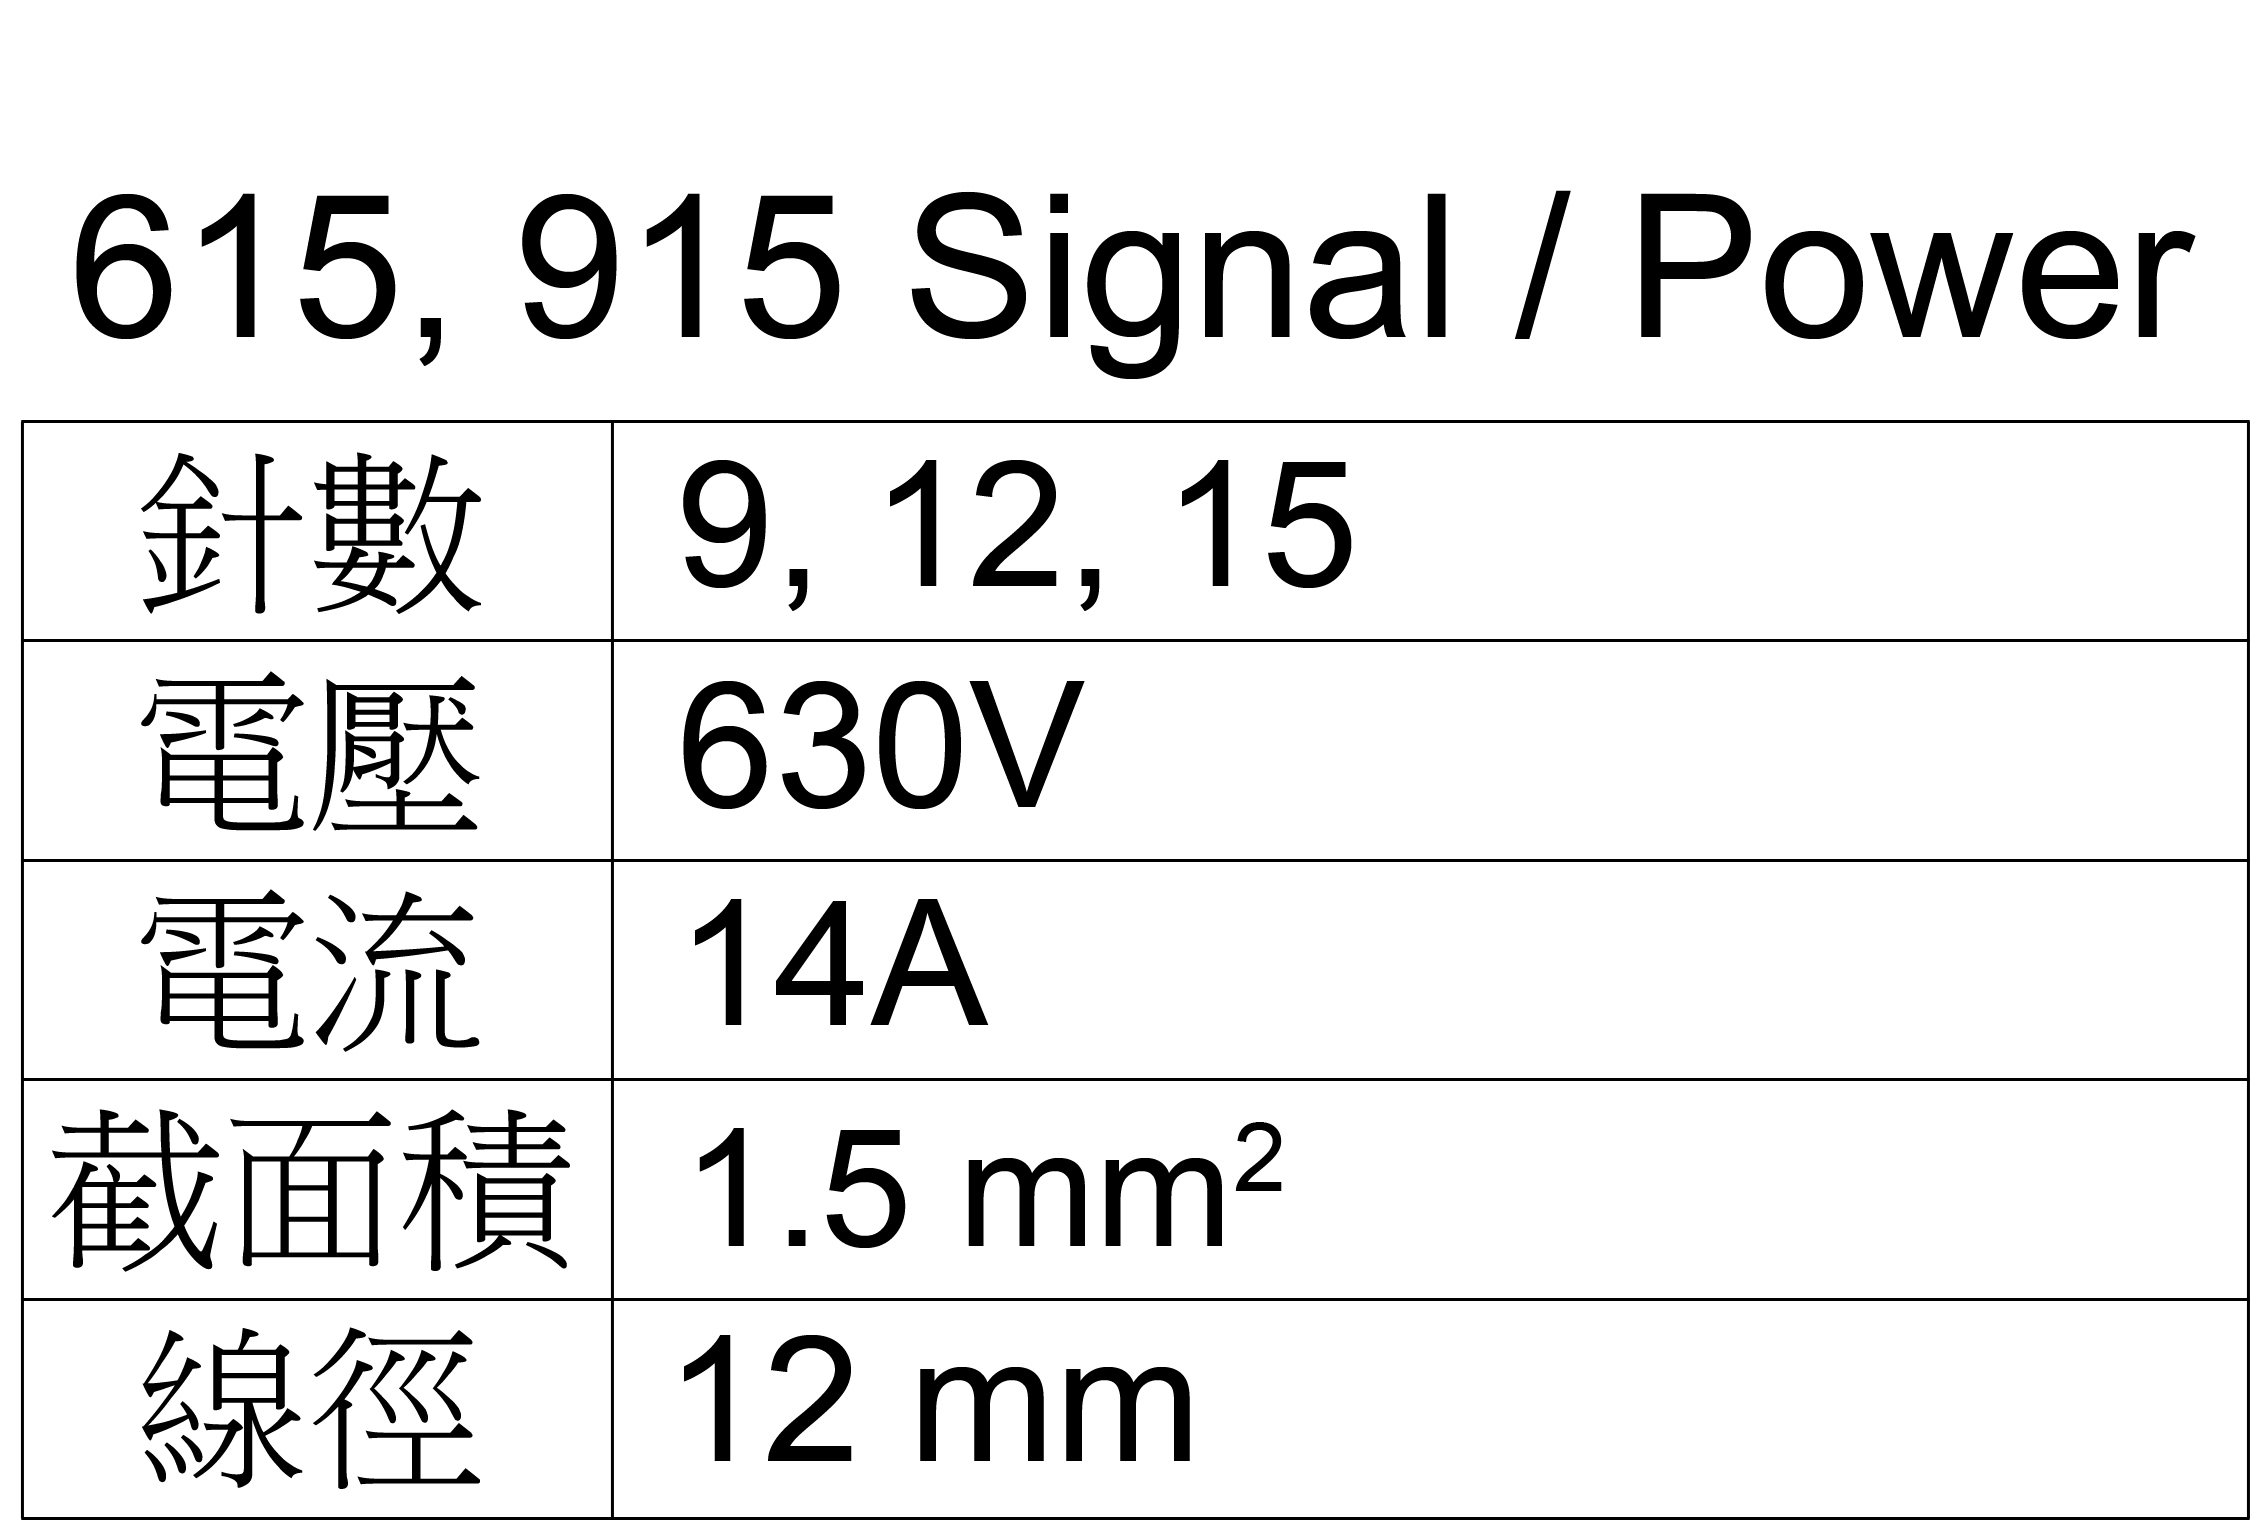 hcy-intercontec-615,915 signal-power